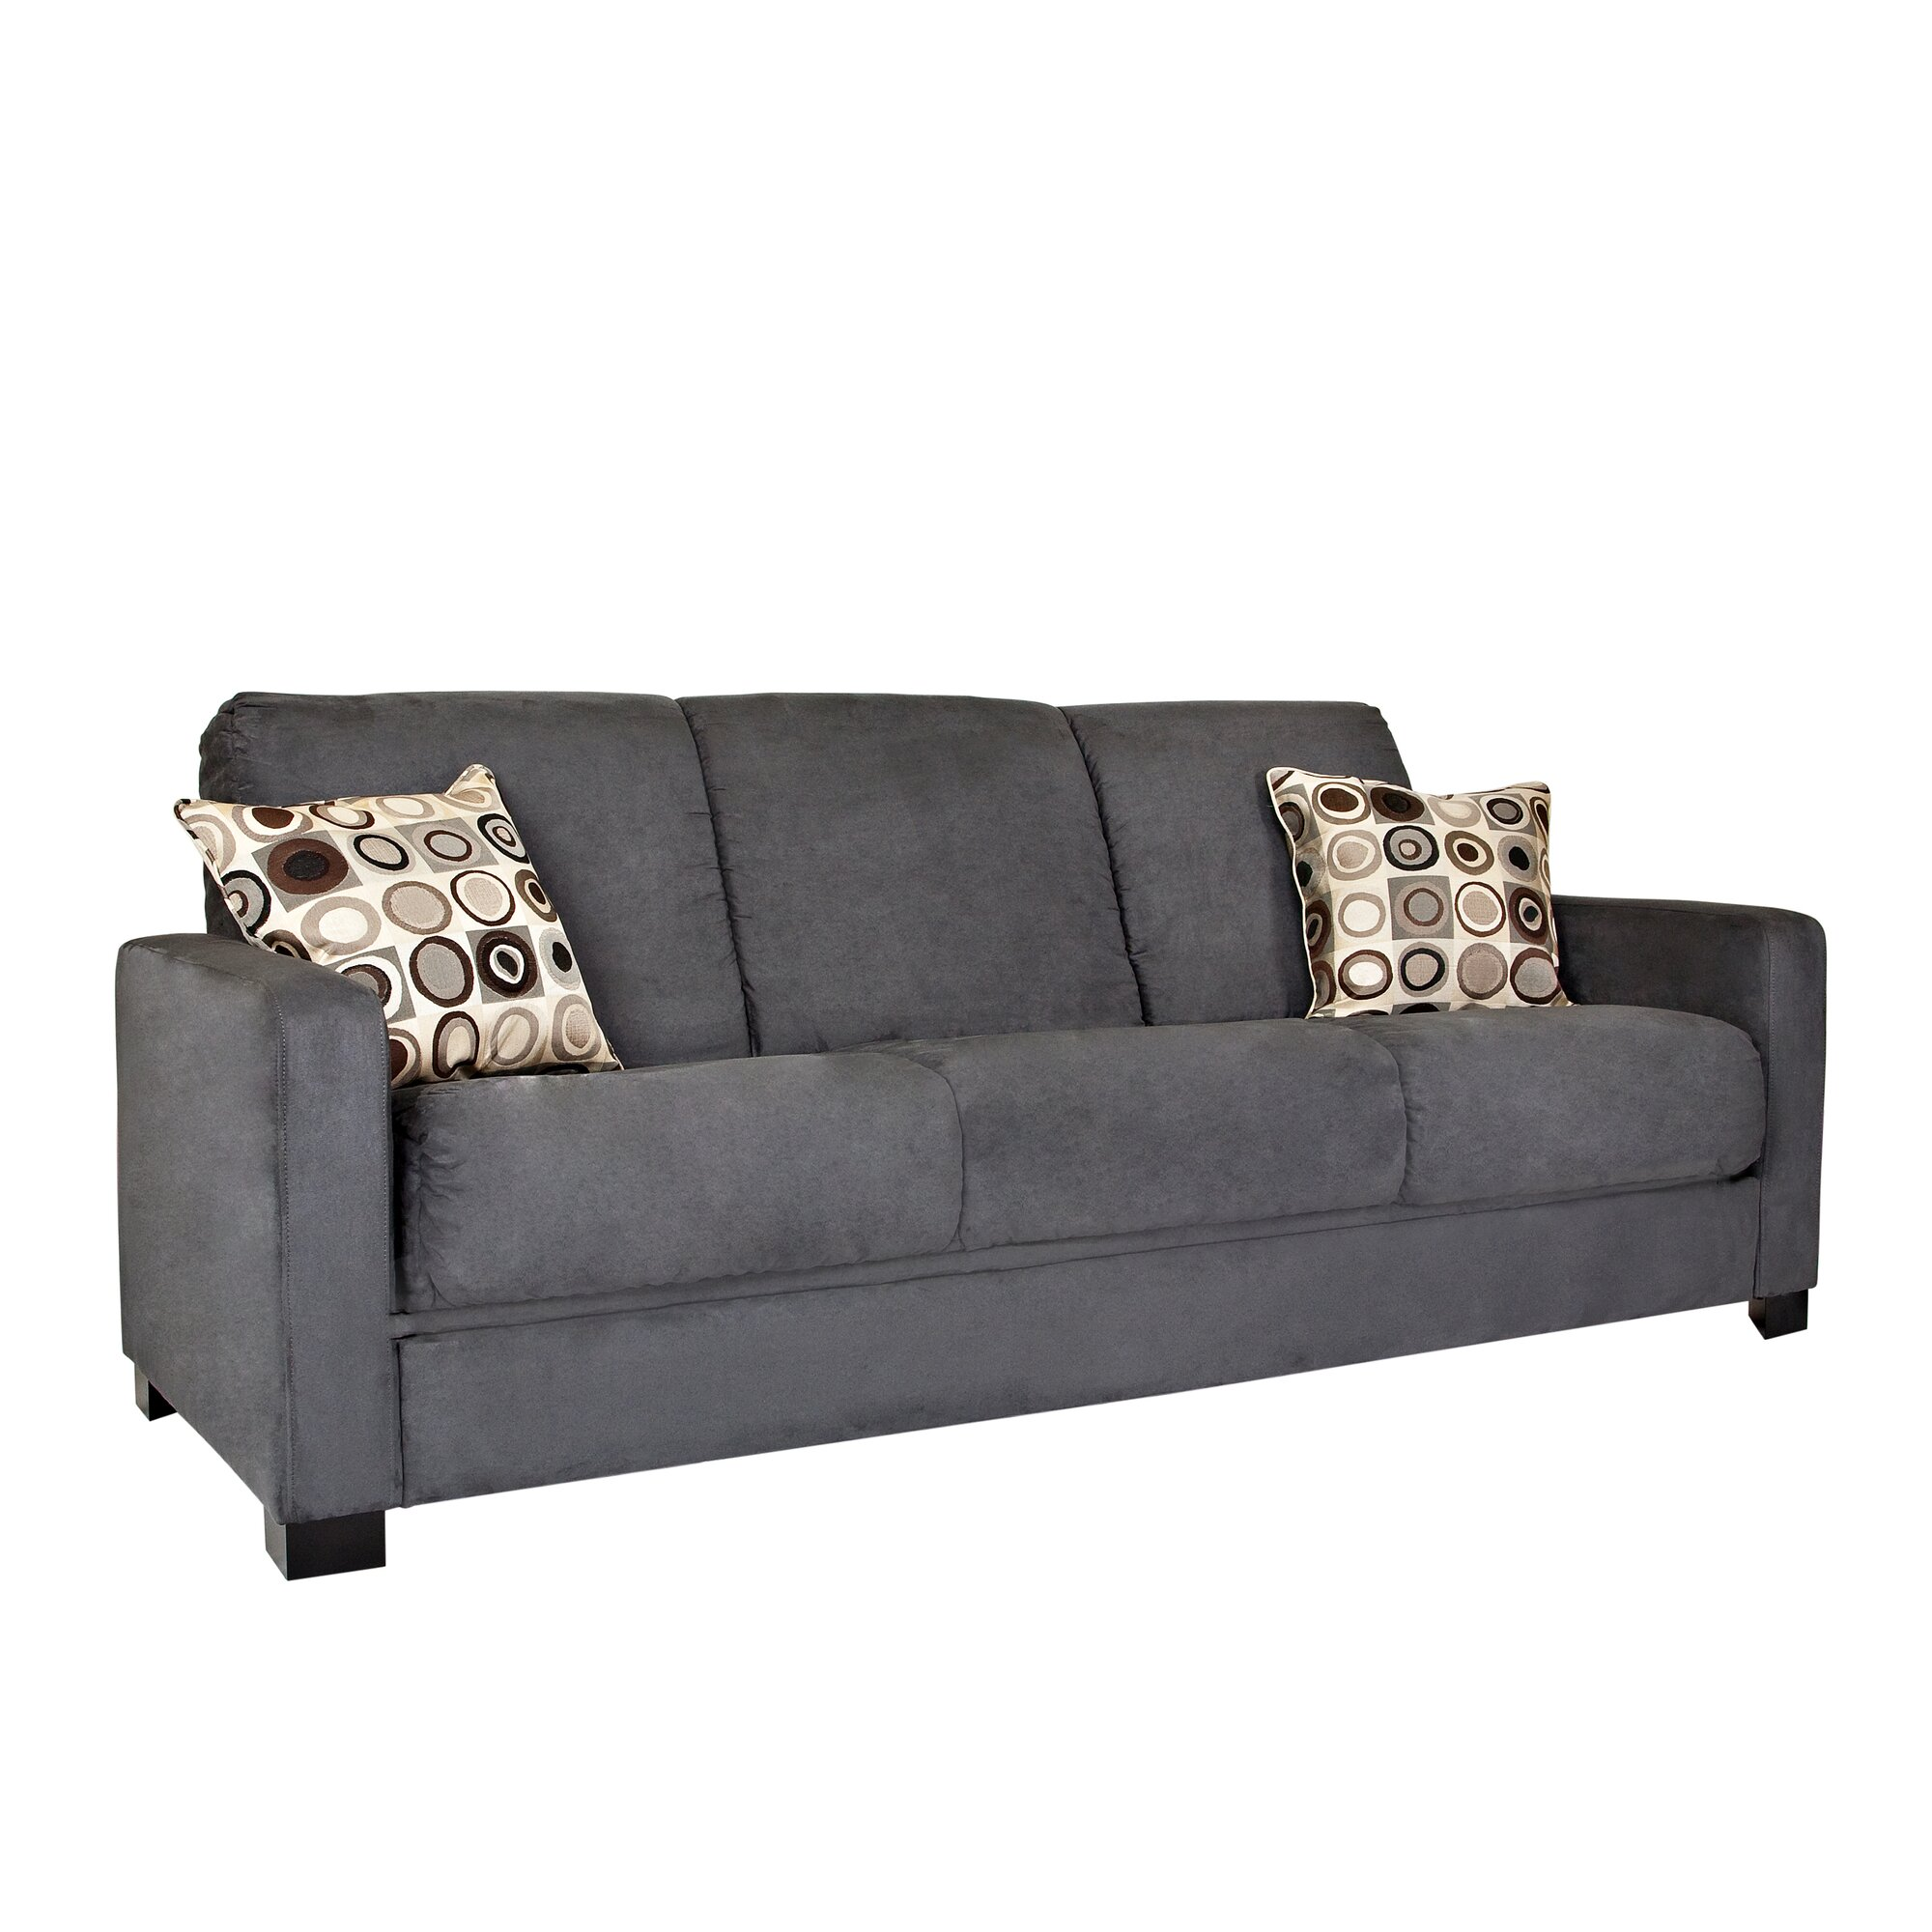 Convert Couch To Sleeper convert couch to sleeper - home design